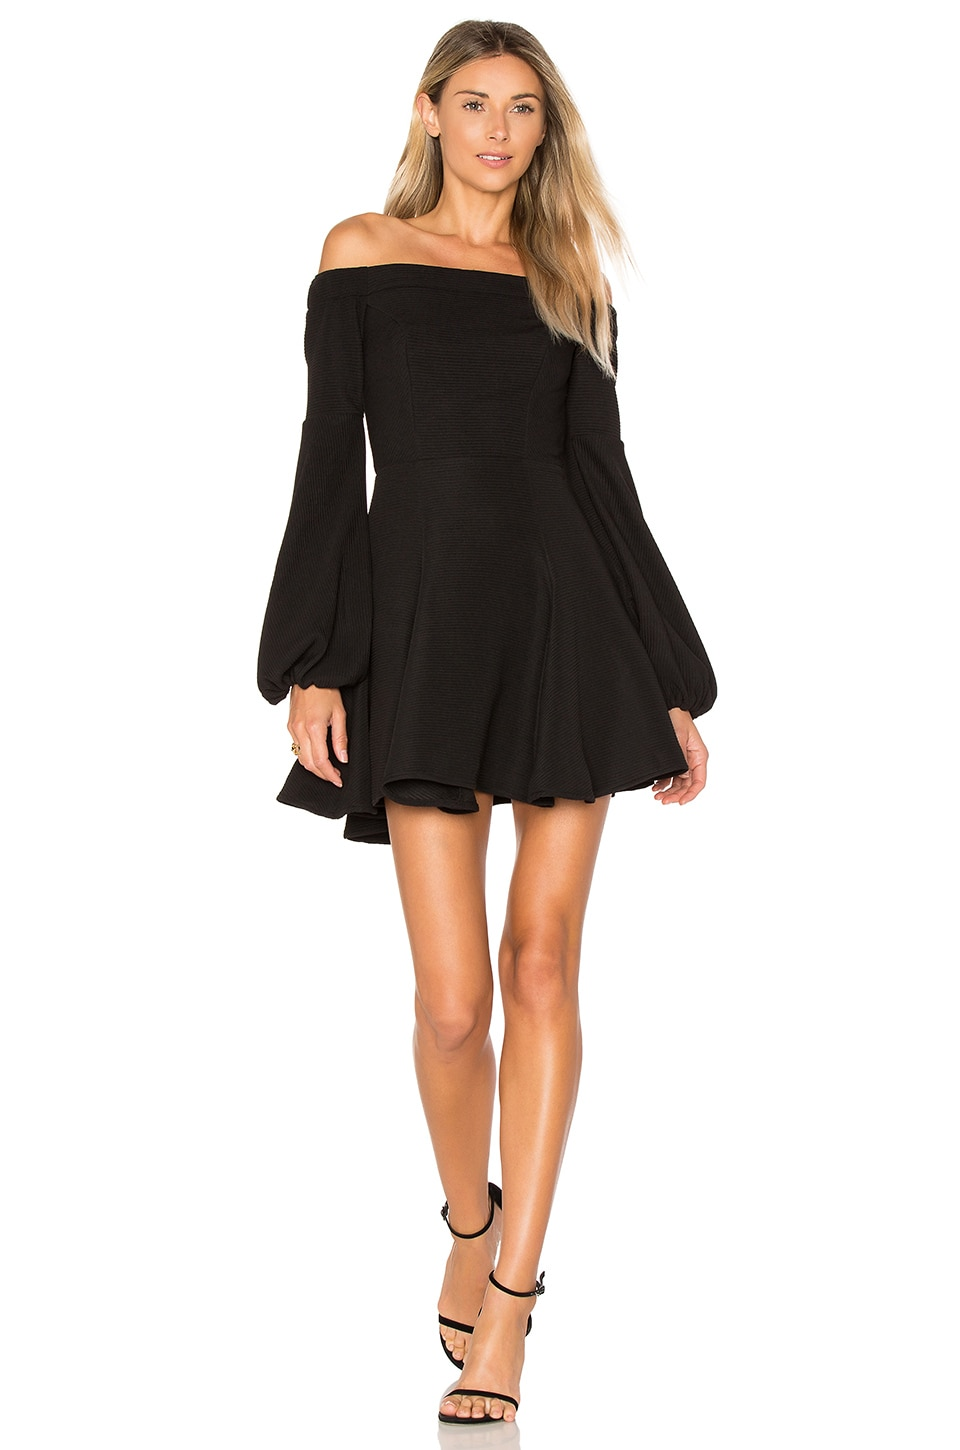 Shona Joy Lori Mini Dress in Black